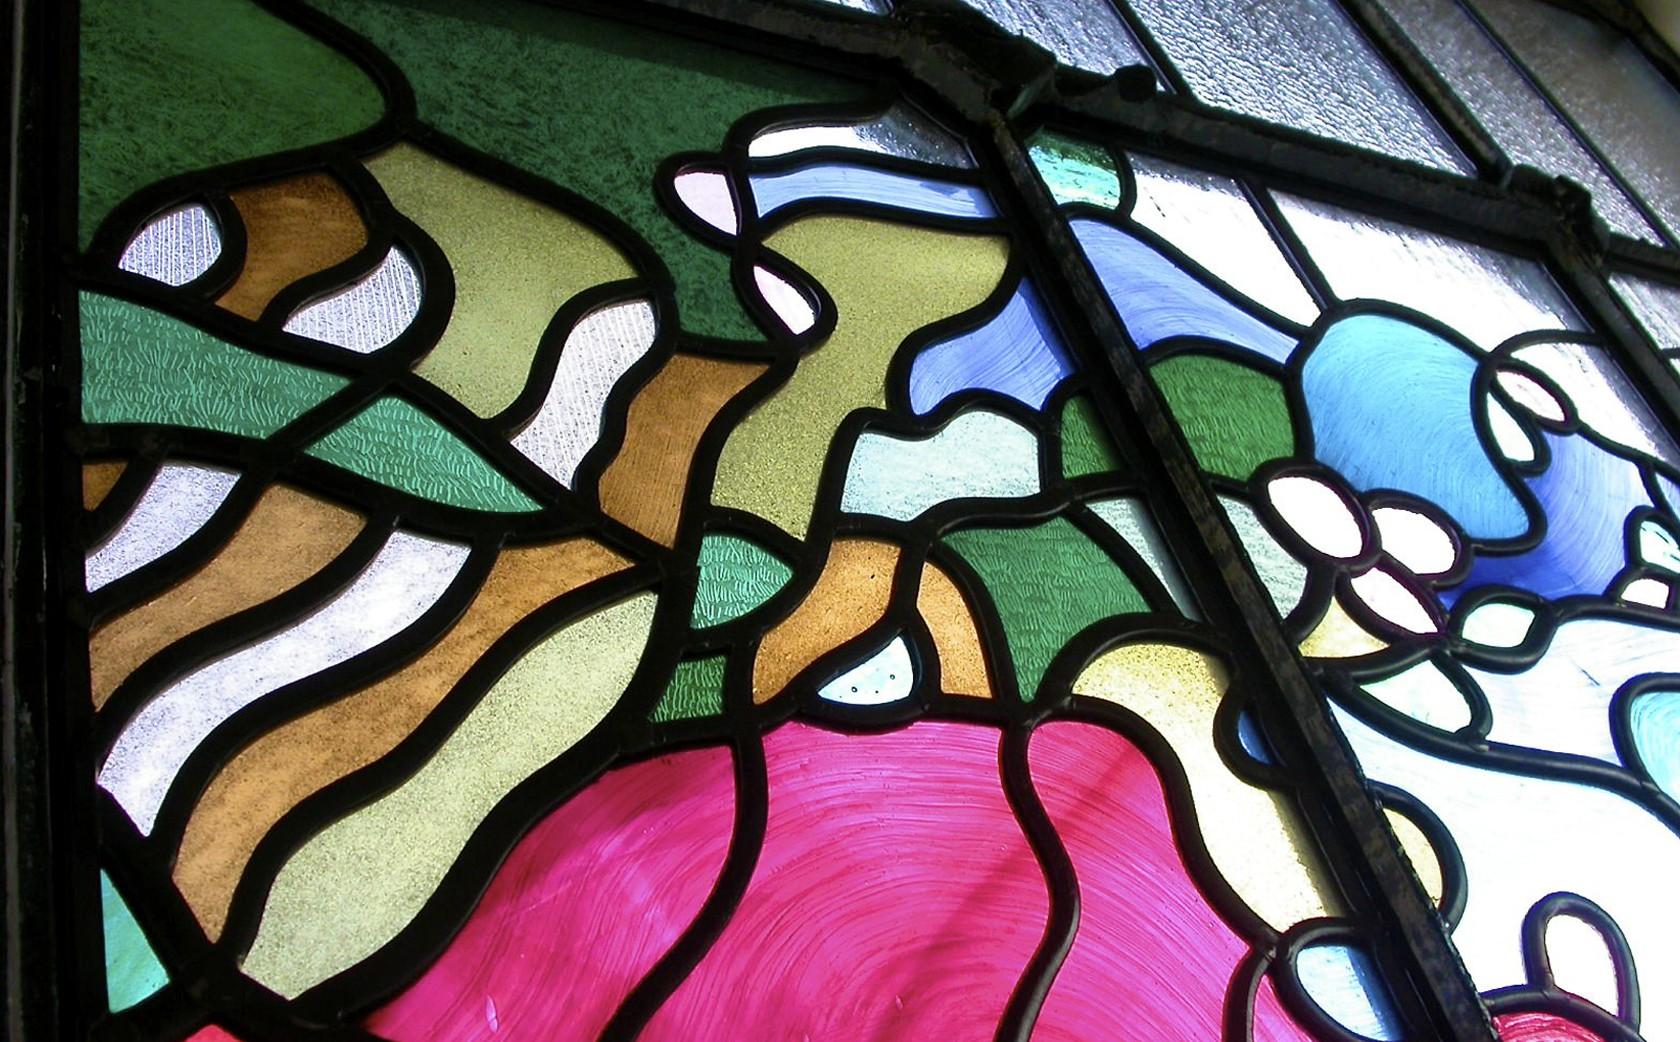 Section stained glass - greens and pinks